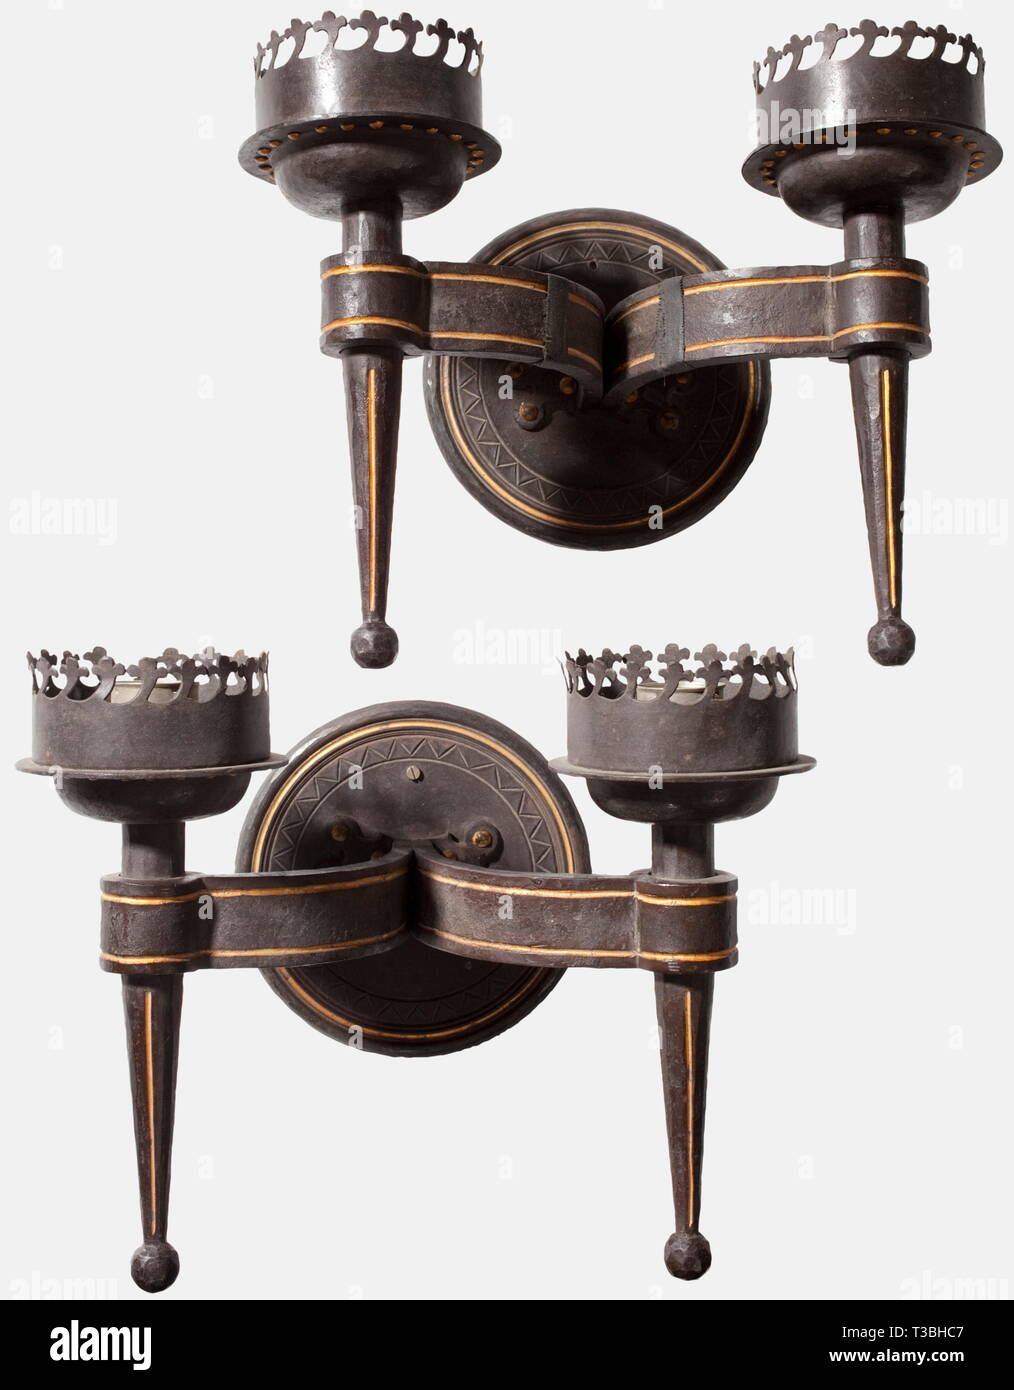 A pair of wrought iron wall sconces, from the Berchtesgadener Hof Double lamp versions, the surfaces with traces of the forging process, darkly patinated and decorated with gilt ornamental lines, complete with wall holder, newly electrified, the lampshades are missing. Height 28.5 cm. Cf. Florian M. Beierl, History of the Berchtesgadener Hof, Berchtesgaden 1991, p. 30, upper fig. The Berchtesgadener Hof had been built as a grand hotel in 1898 and provided accommodation especially for Kaiser Wilhelm II., his family as well as domestic and foreign aristocracy. In 1939 the NSD, Editorial-Use-Only - Stock Image